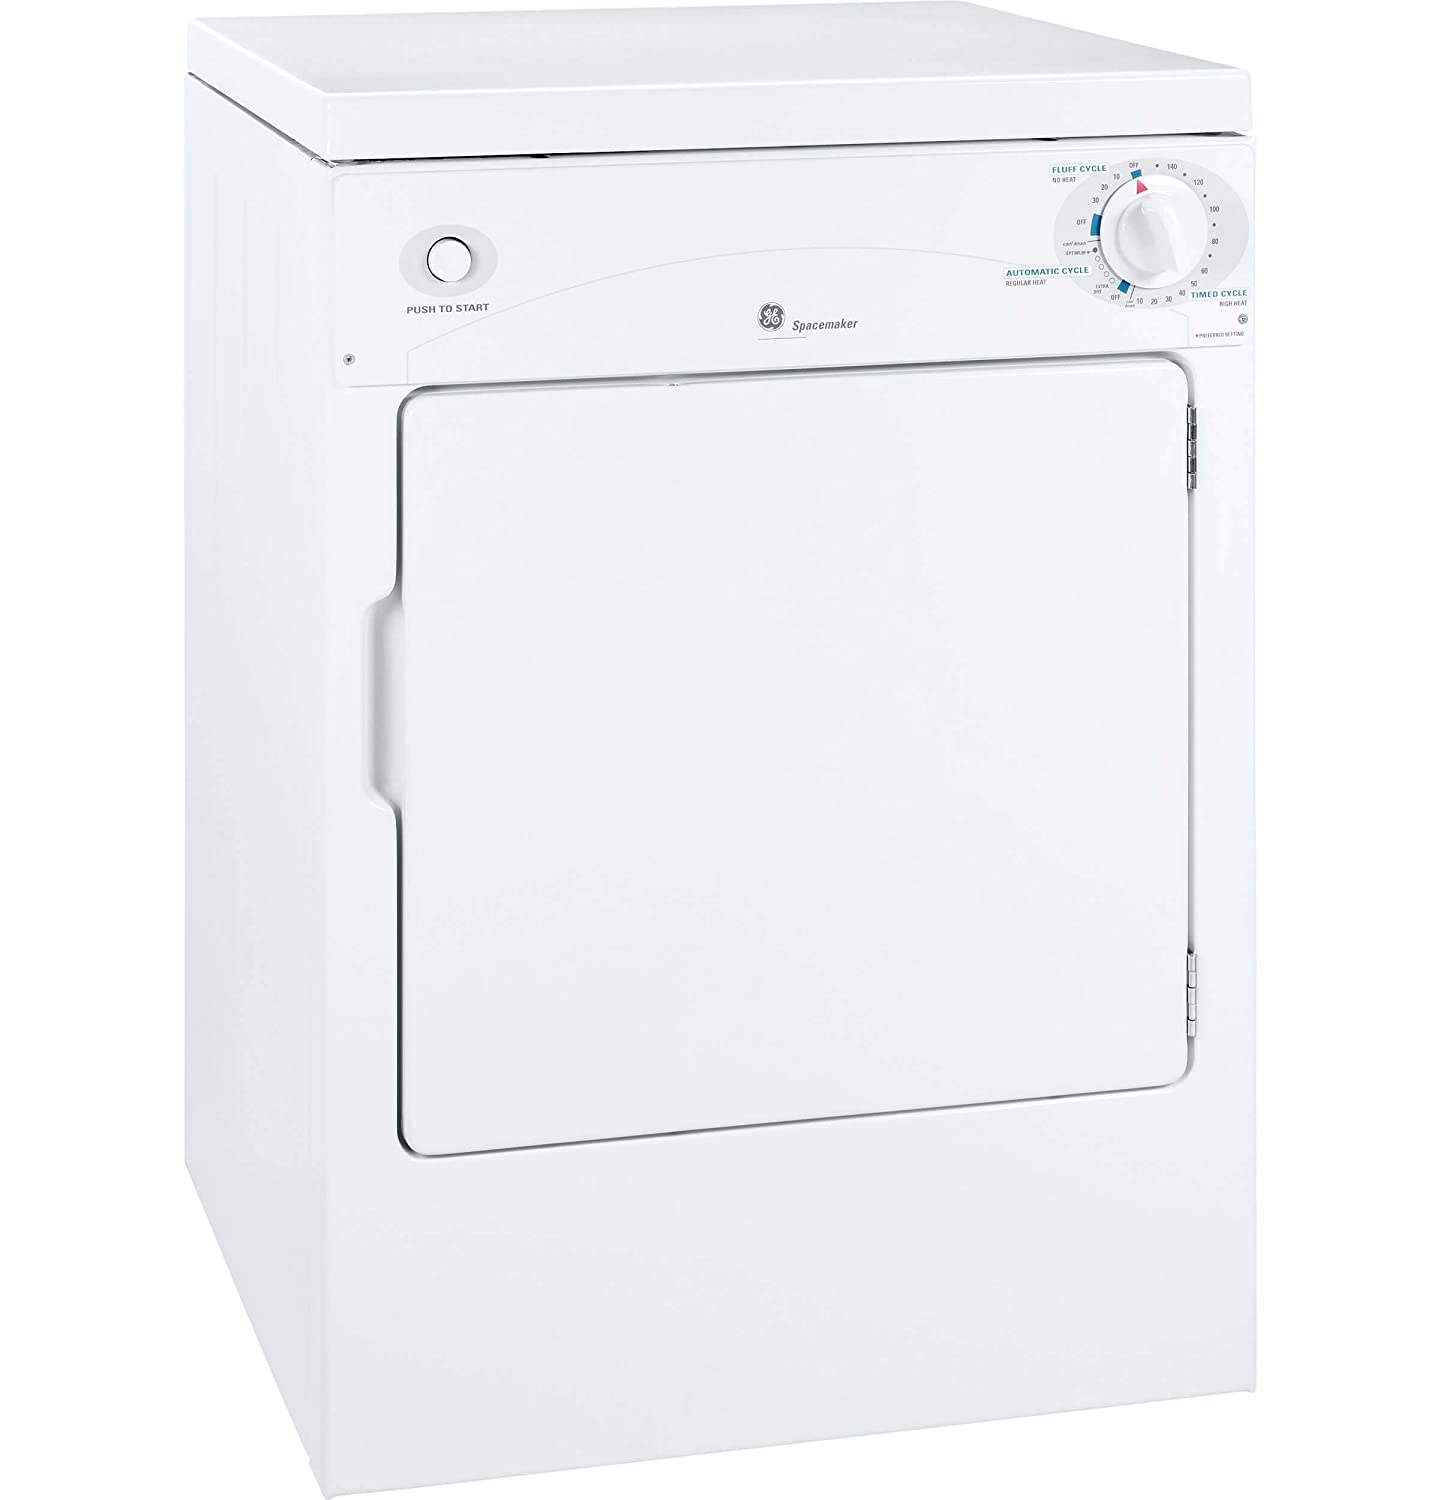 """B0011YFL58 GE DSKP333ECWW Spacemaker 24"""" Portable Electric Dryer with 3.6 Cubic. Ft. Capacity 71rg7v0J6WL._SL1500_"""